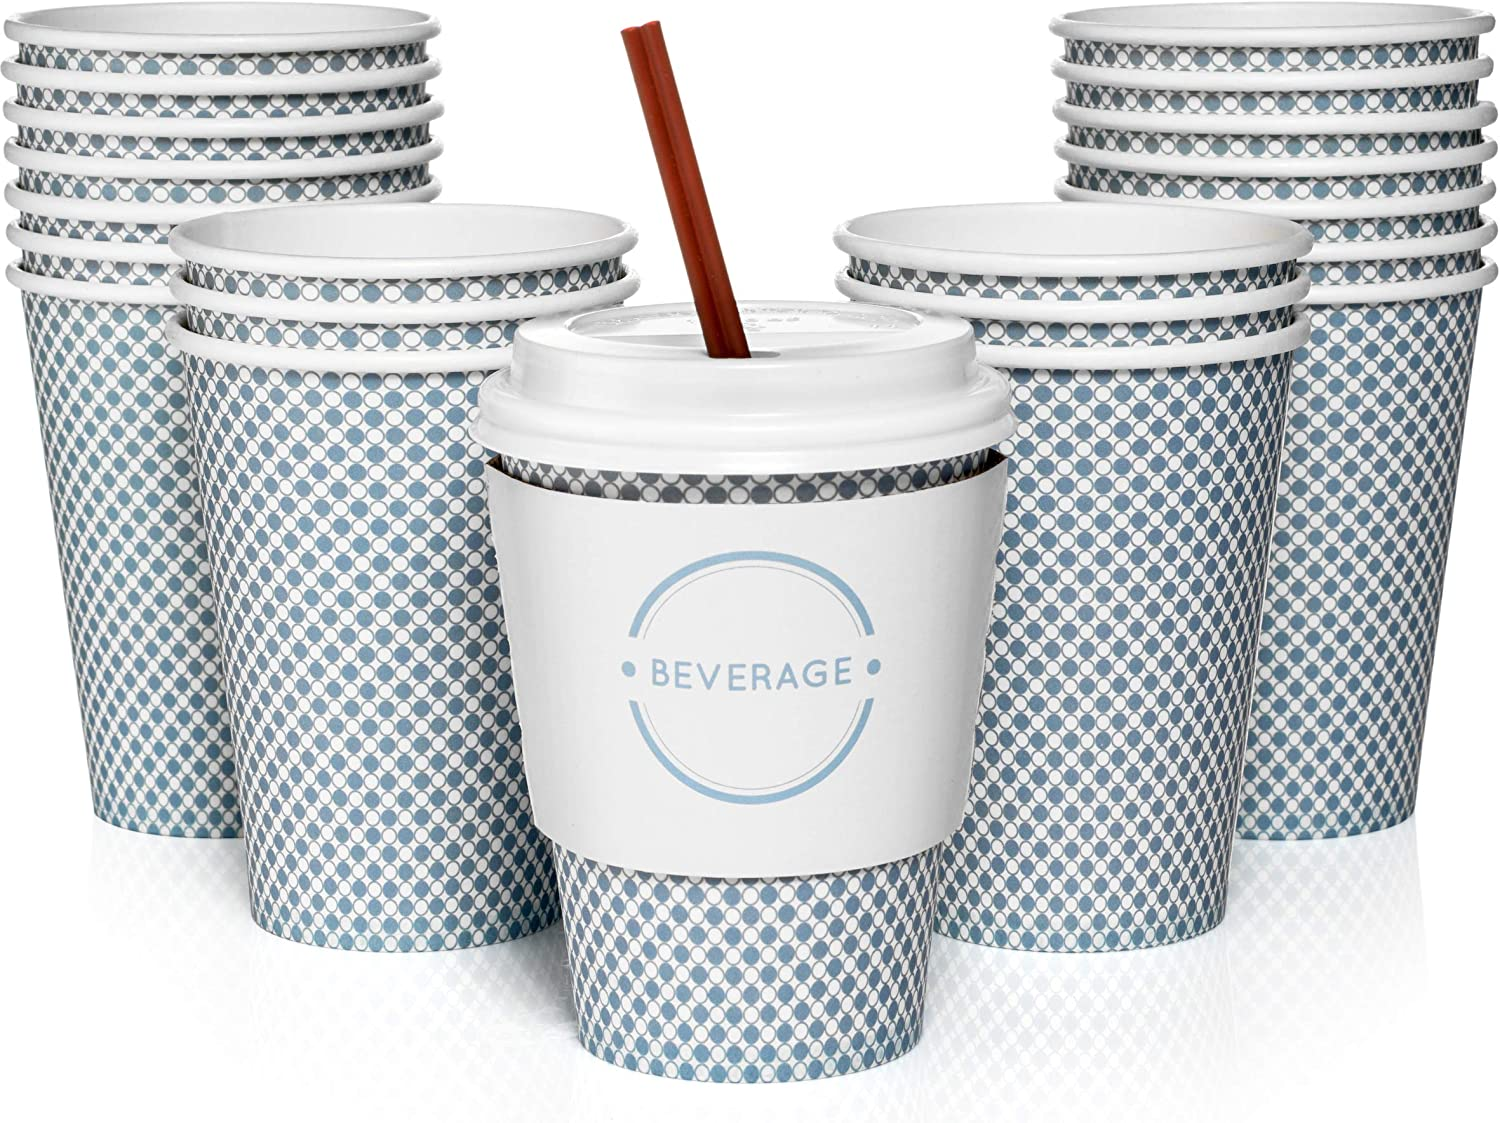 Sweetzer & Orange 12 Oz. Disposable Paper Coffee Cups with Lids (Set of 100) Includes Stir Sticks and Sleeves - Great Checkered Design for Tea, Hot Chocolate, Mochas and Lattes, Too (Blue)